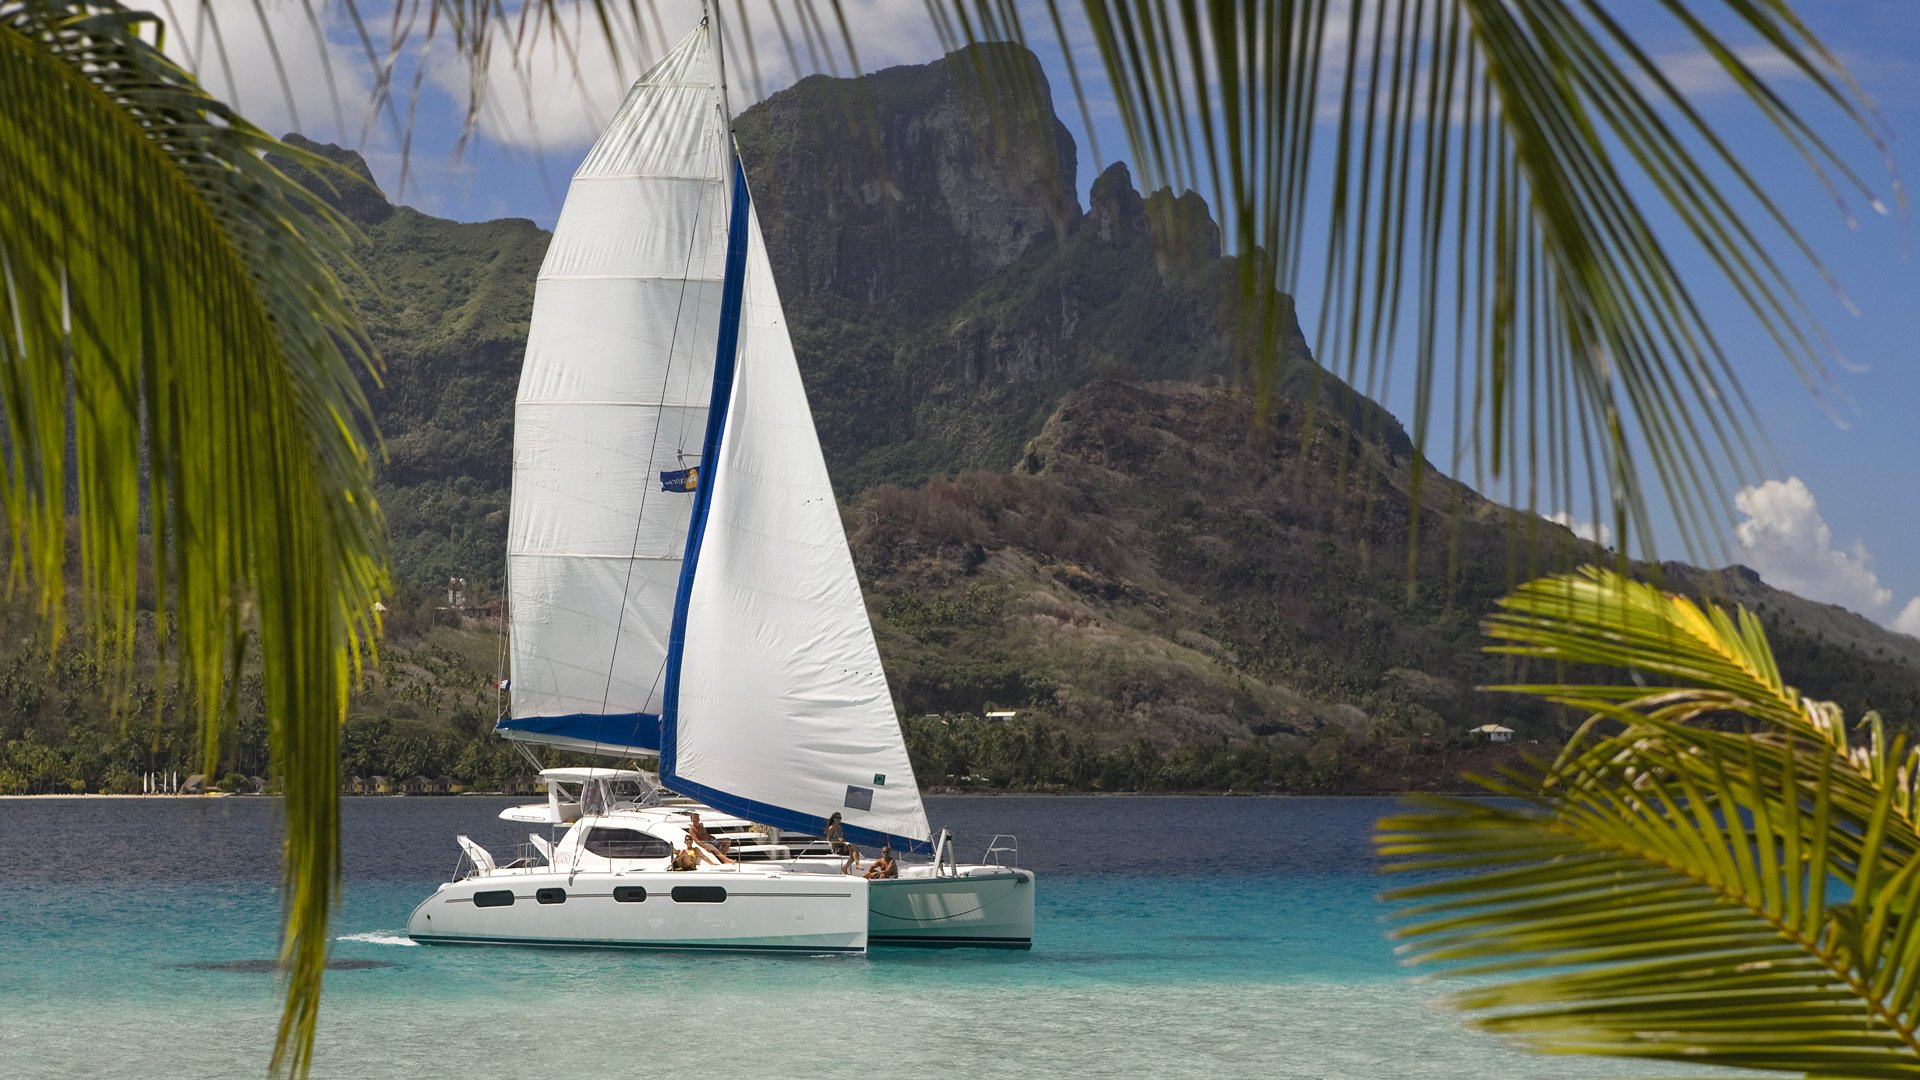 Catamaran sailboats wallpaper